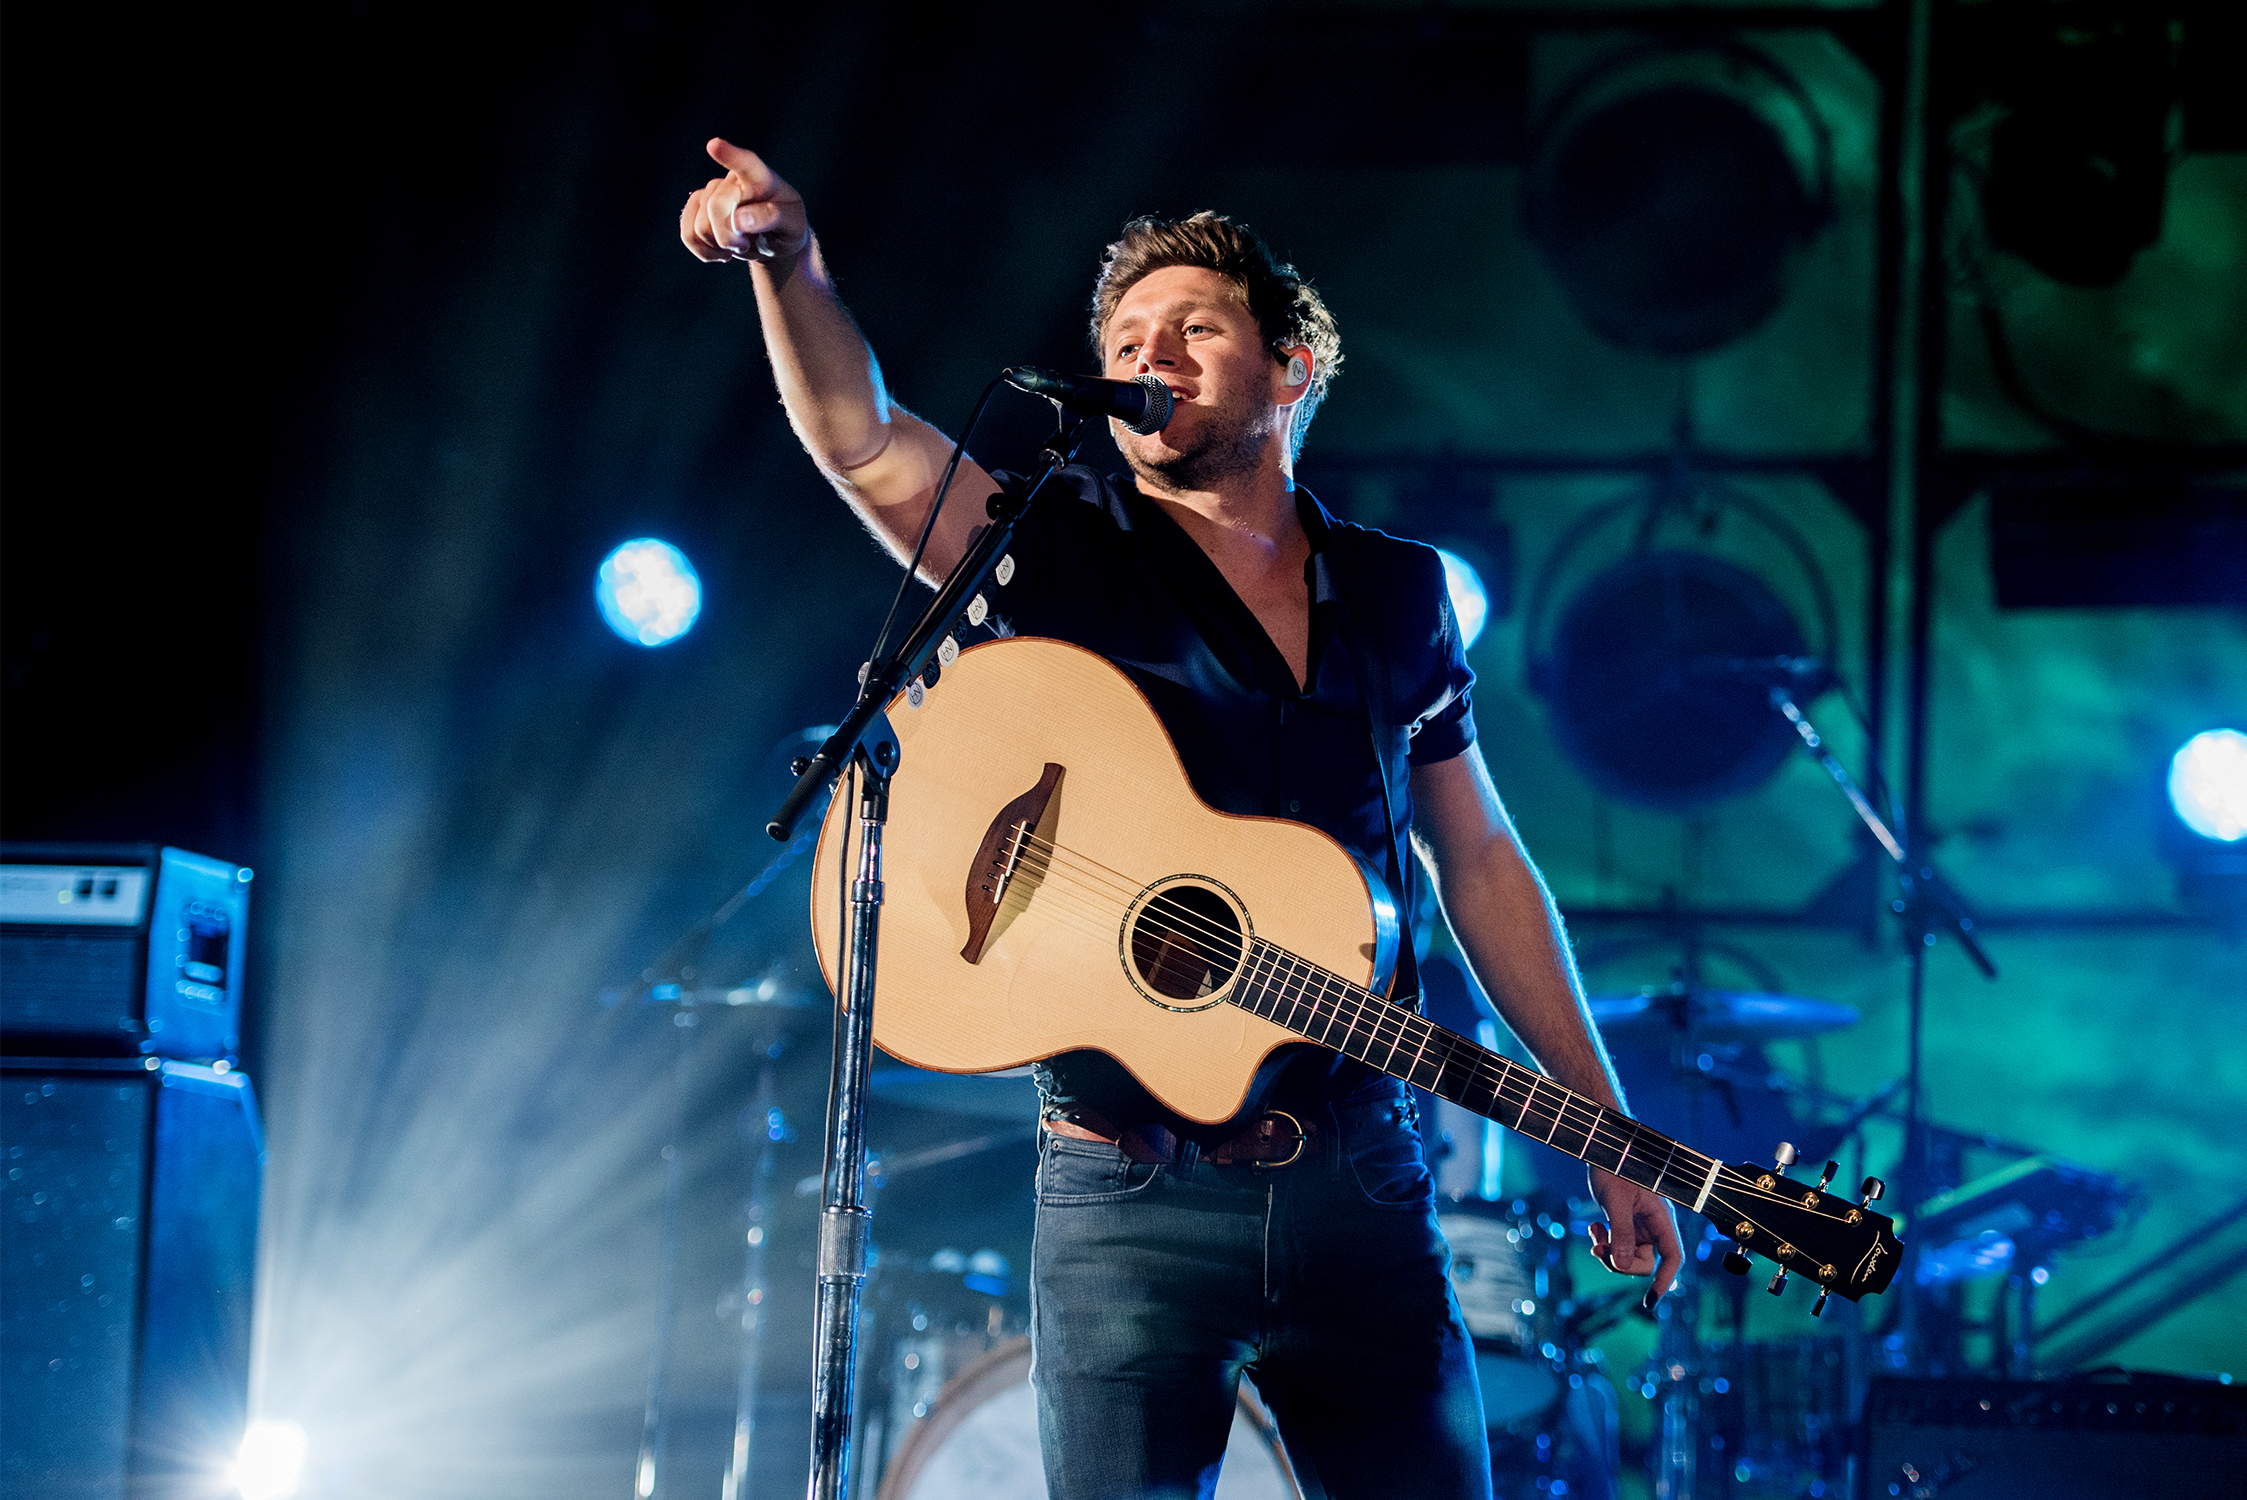 NiallHoranRedRocks8202018 (17 of 32).jpg